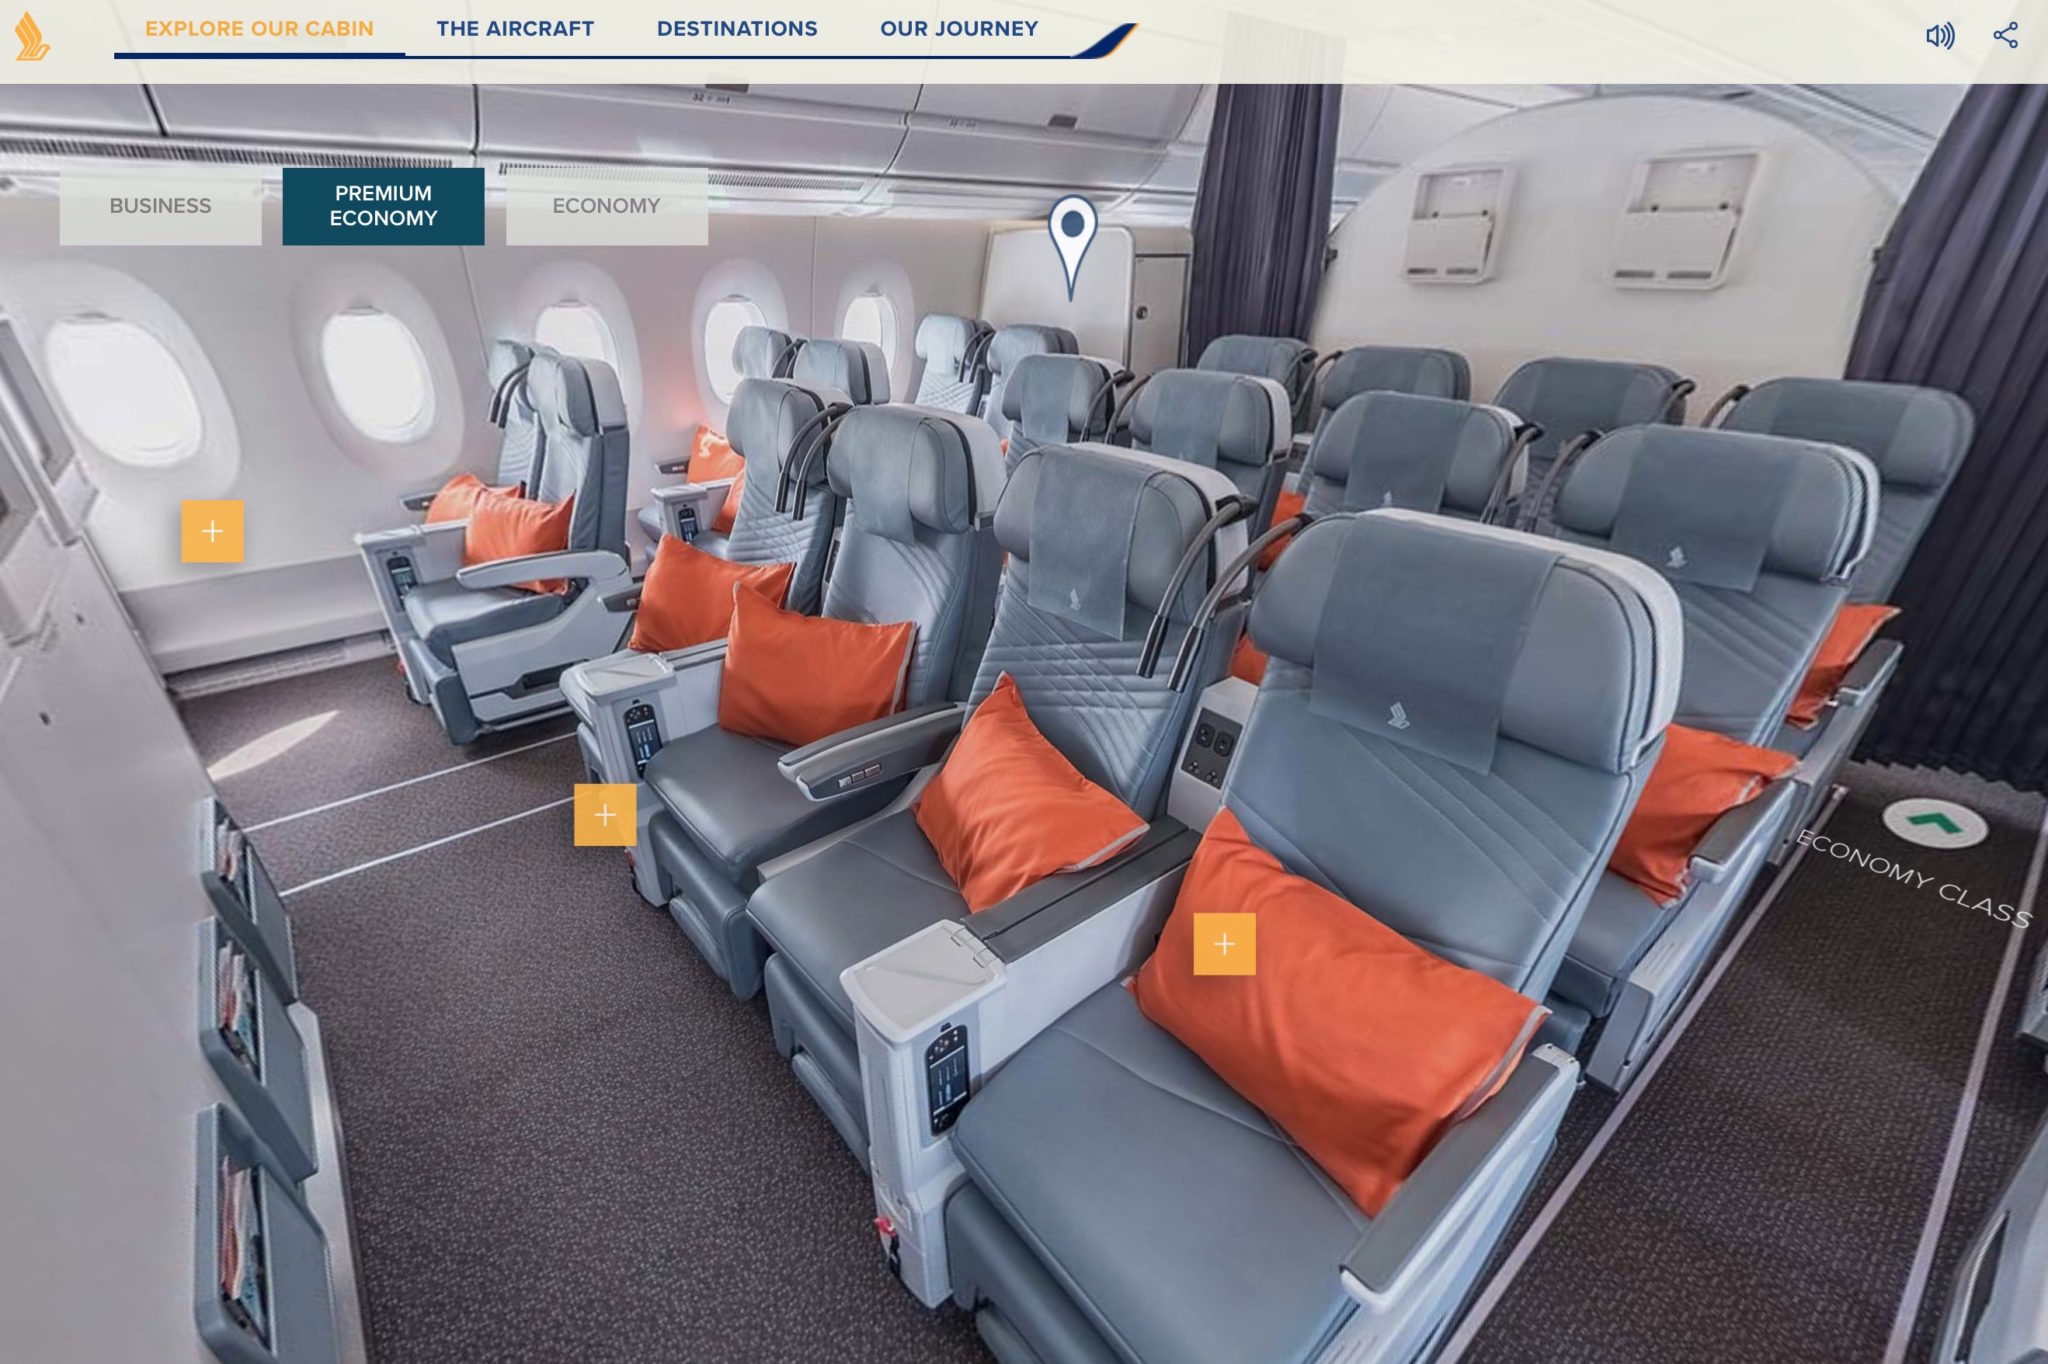 Singapore Airlines and Cathay Pacific both have eight seats abreast on their A350. Image: Singapore Airlines